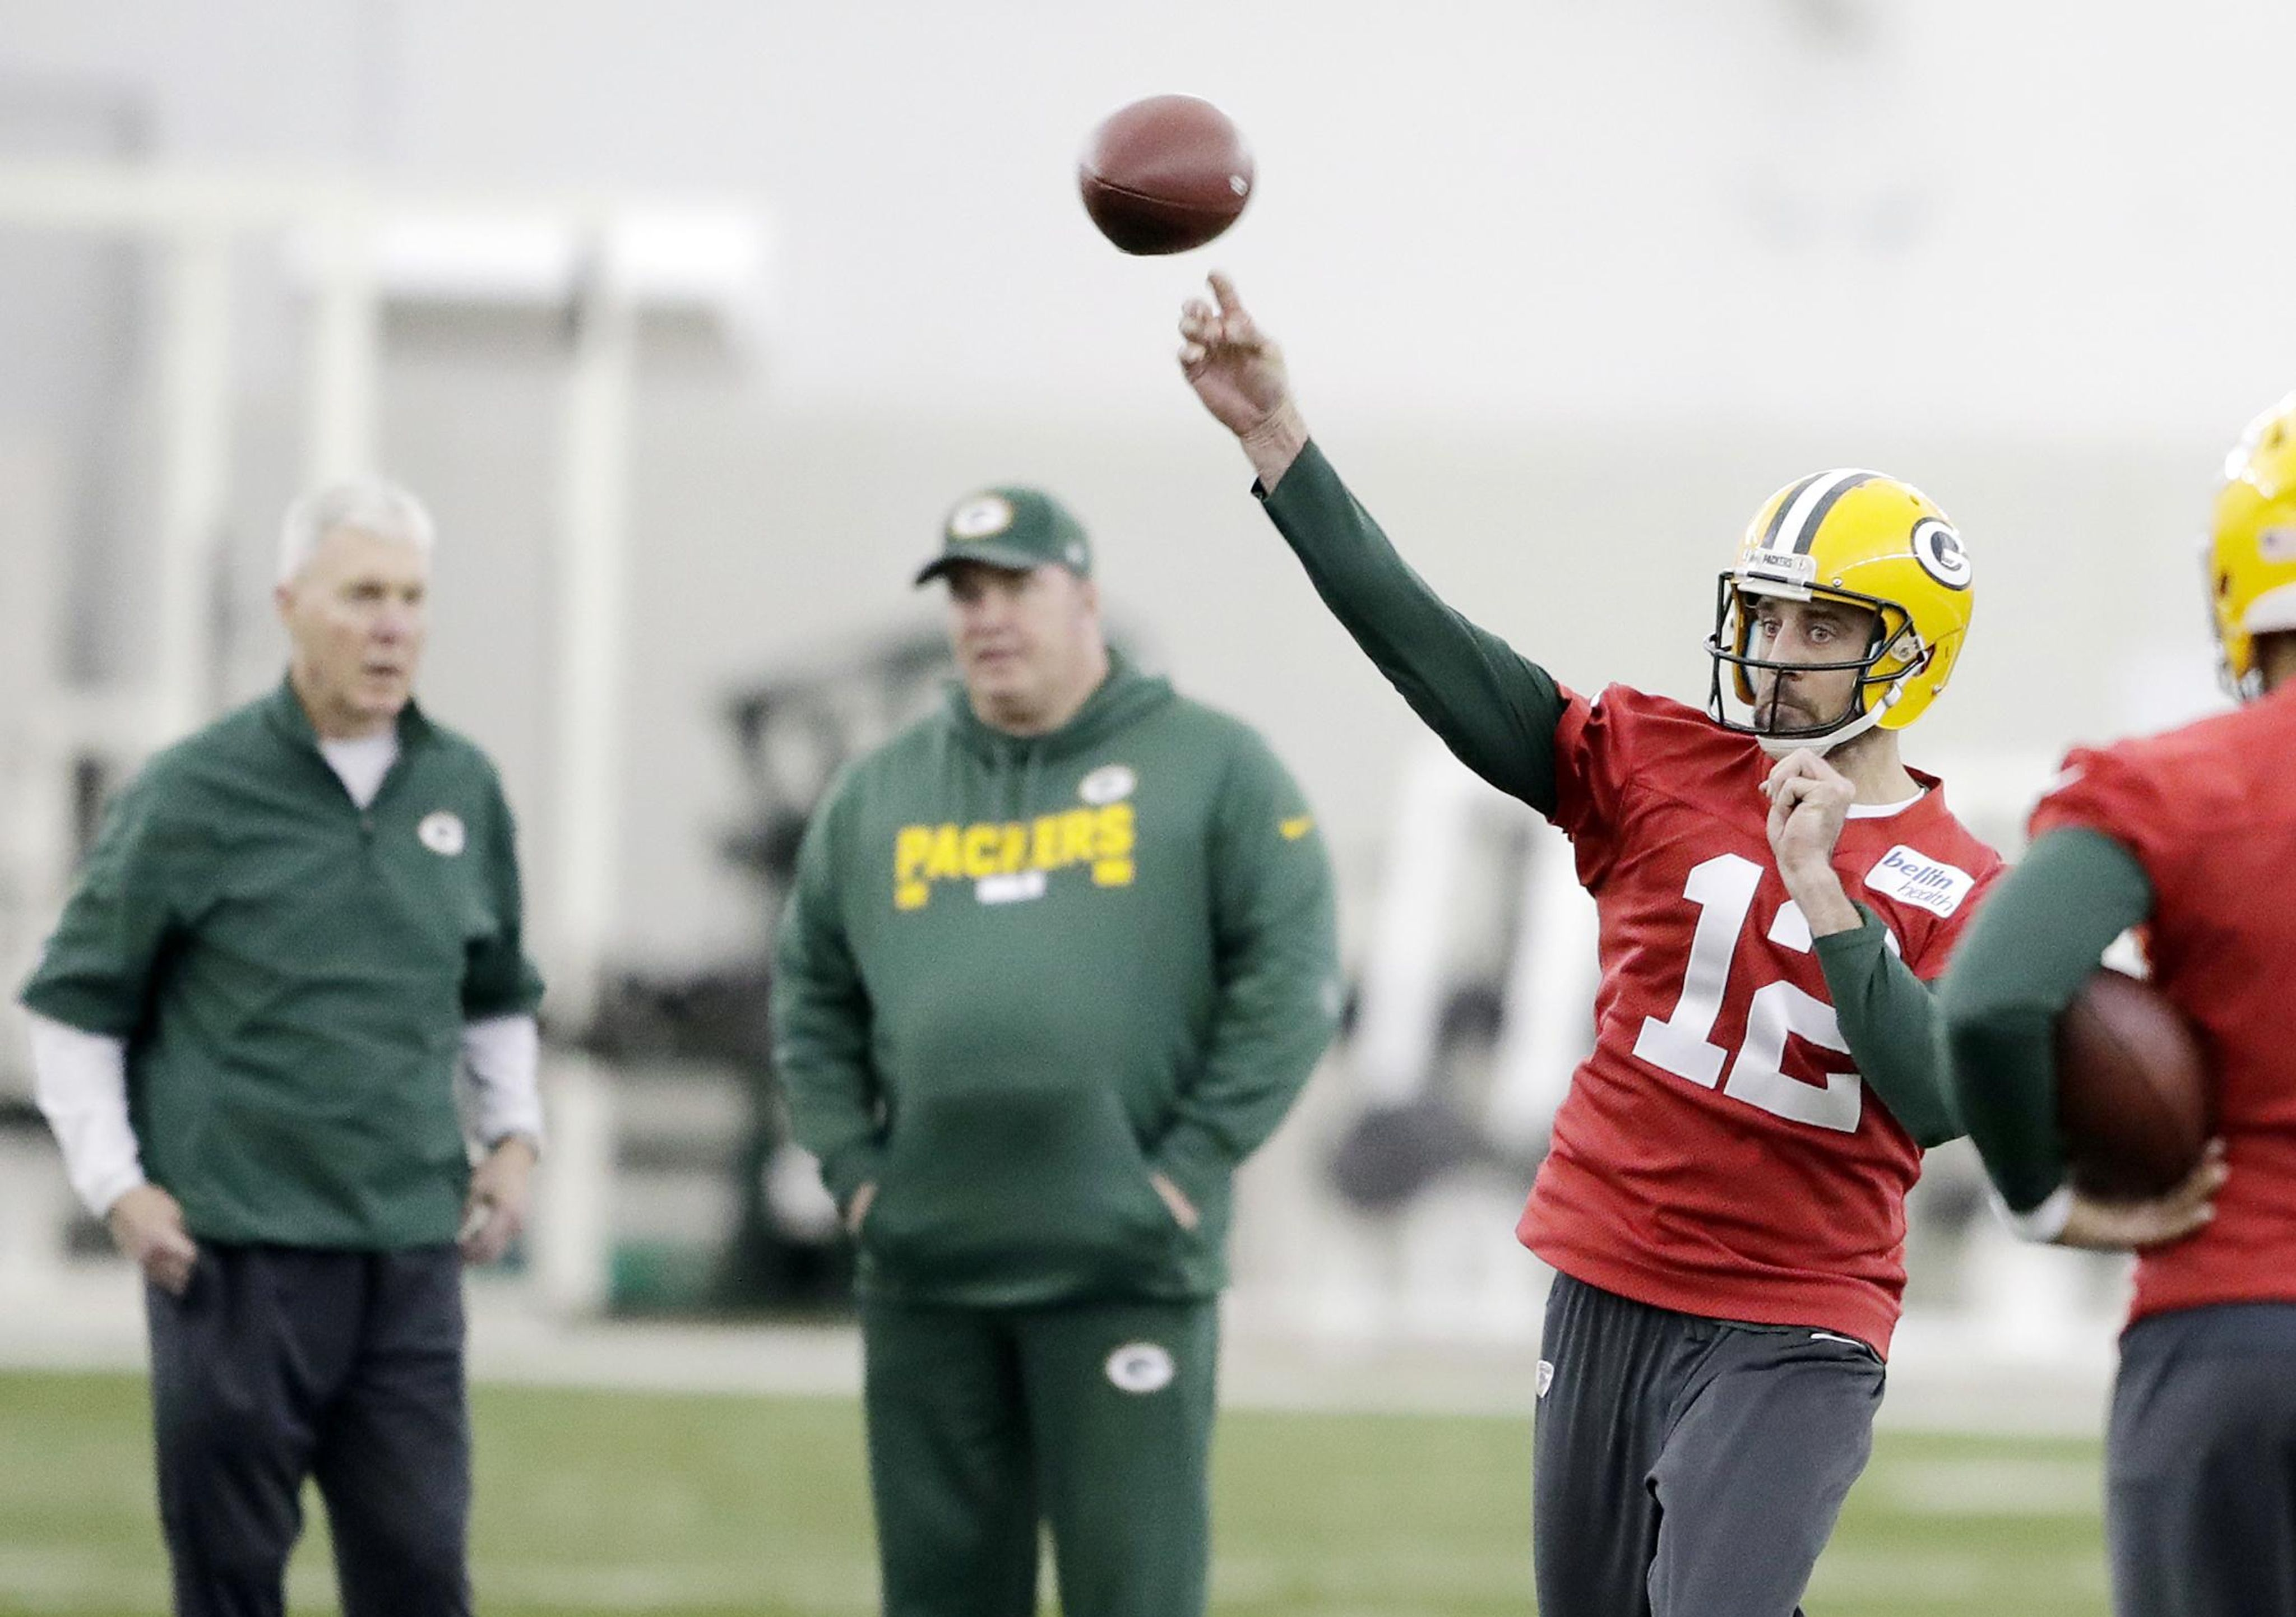 Packers_rodgers_football_92161_s4096x2885